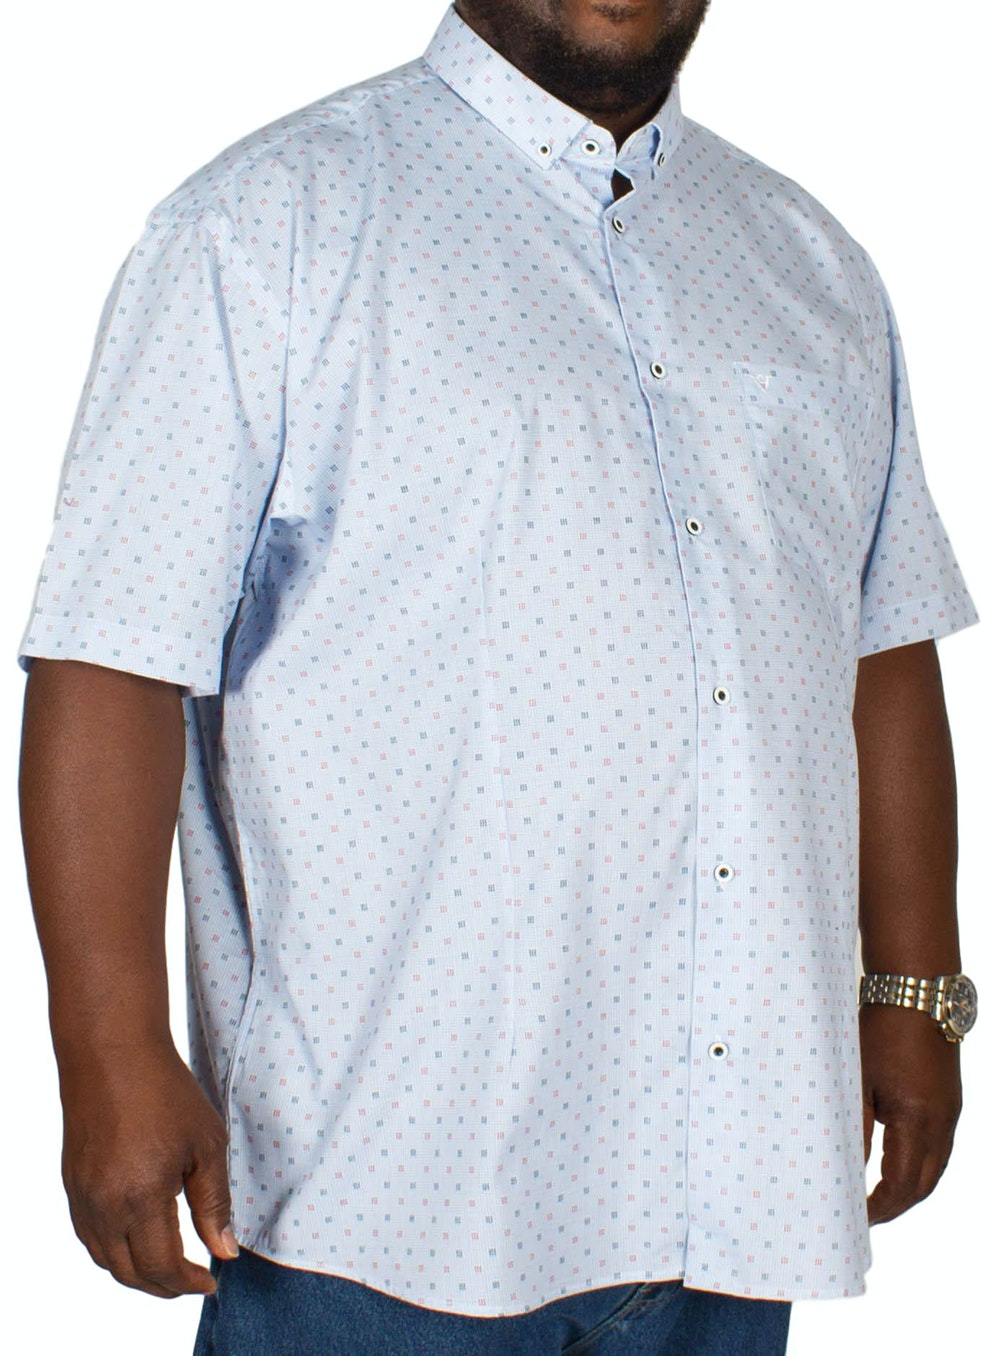 Cotton Valley Over Check Print Shirt Blue